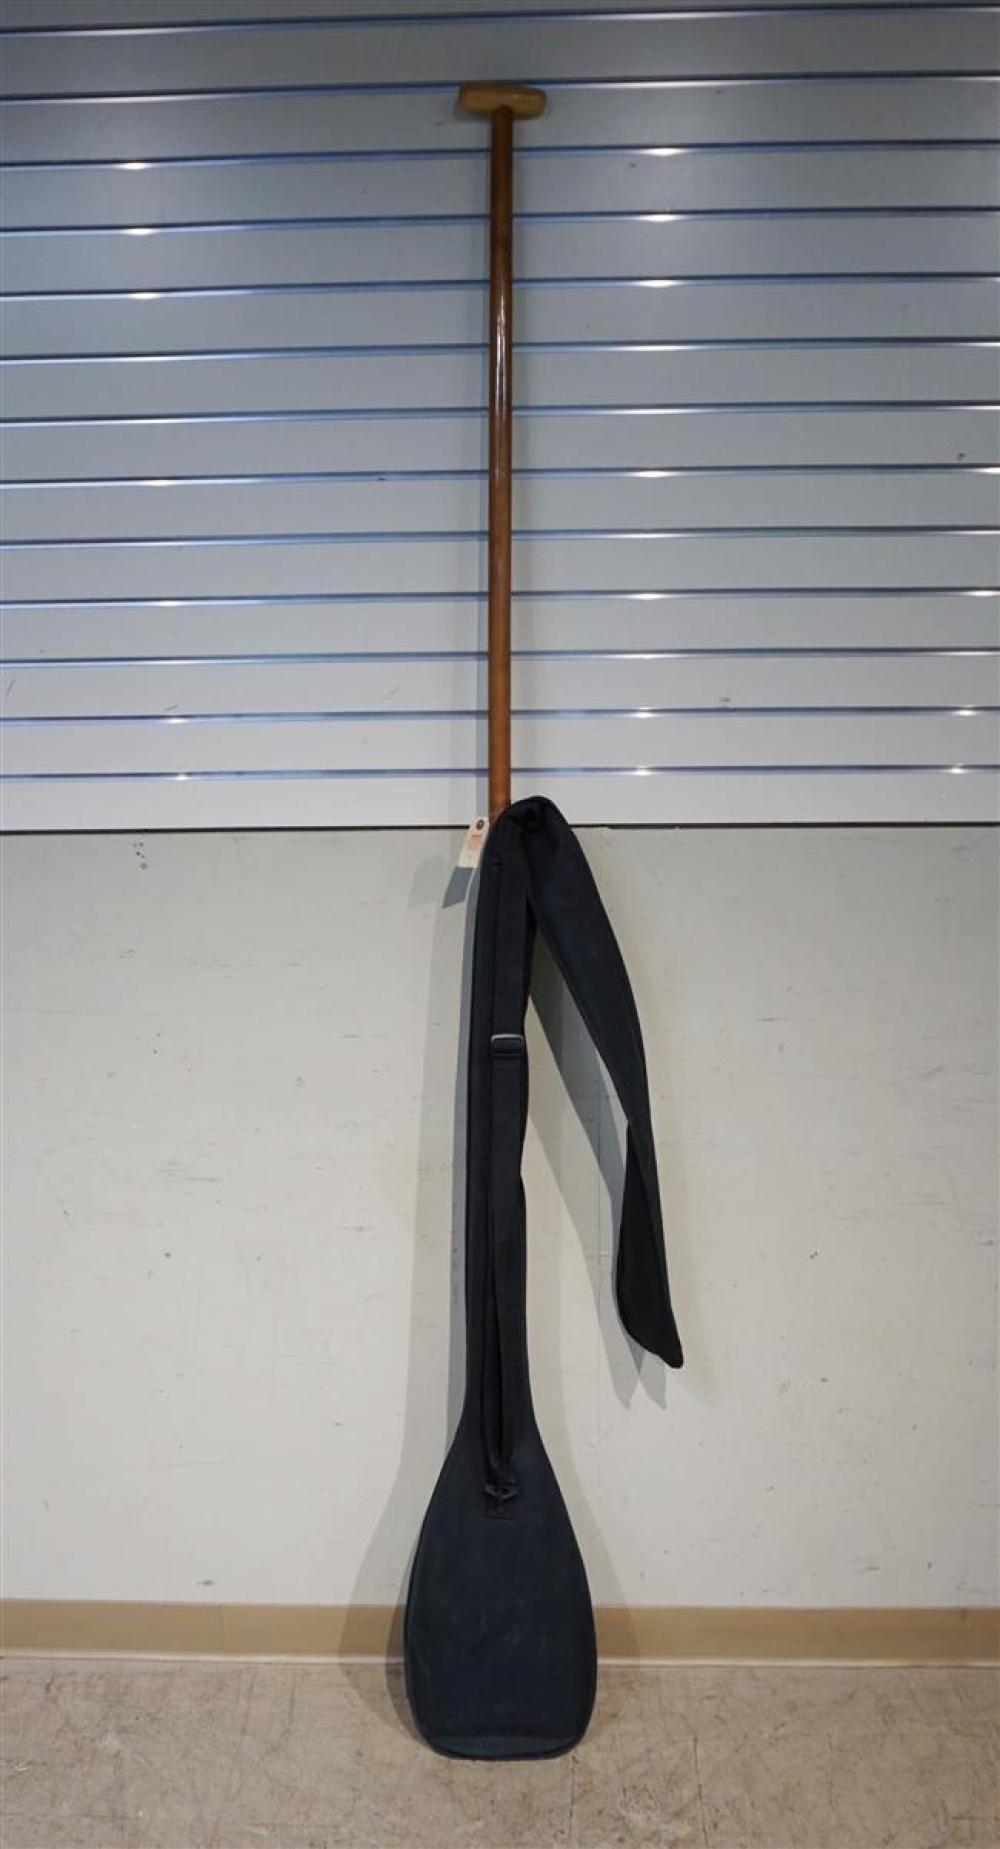 Fruitwood Paddle with Black Vinyl Case